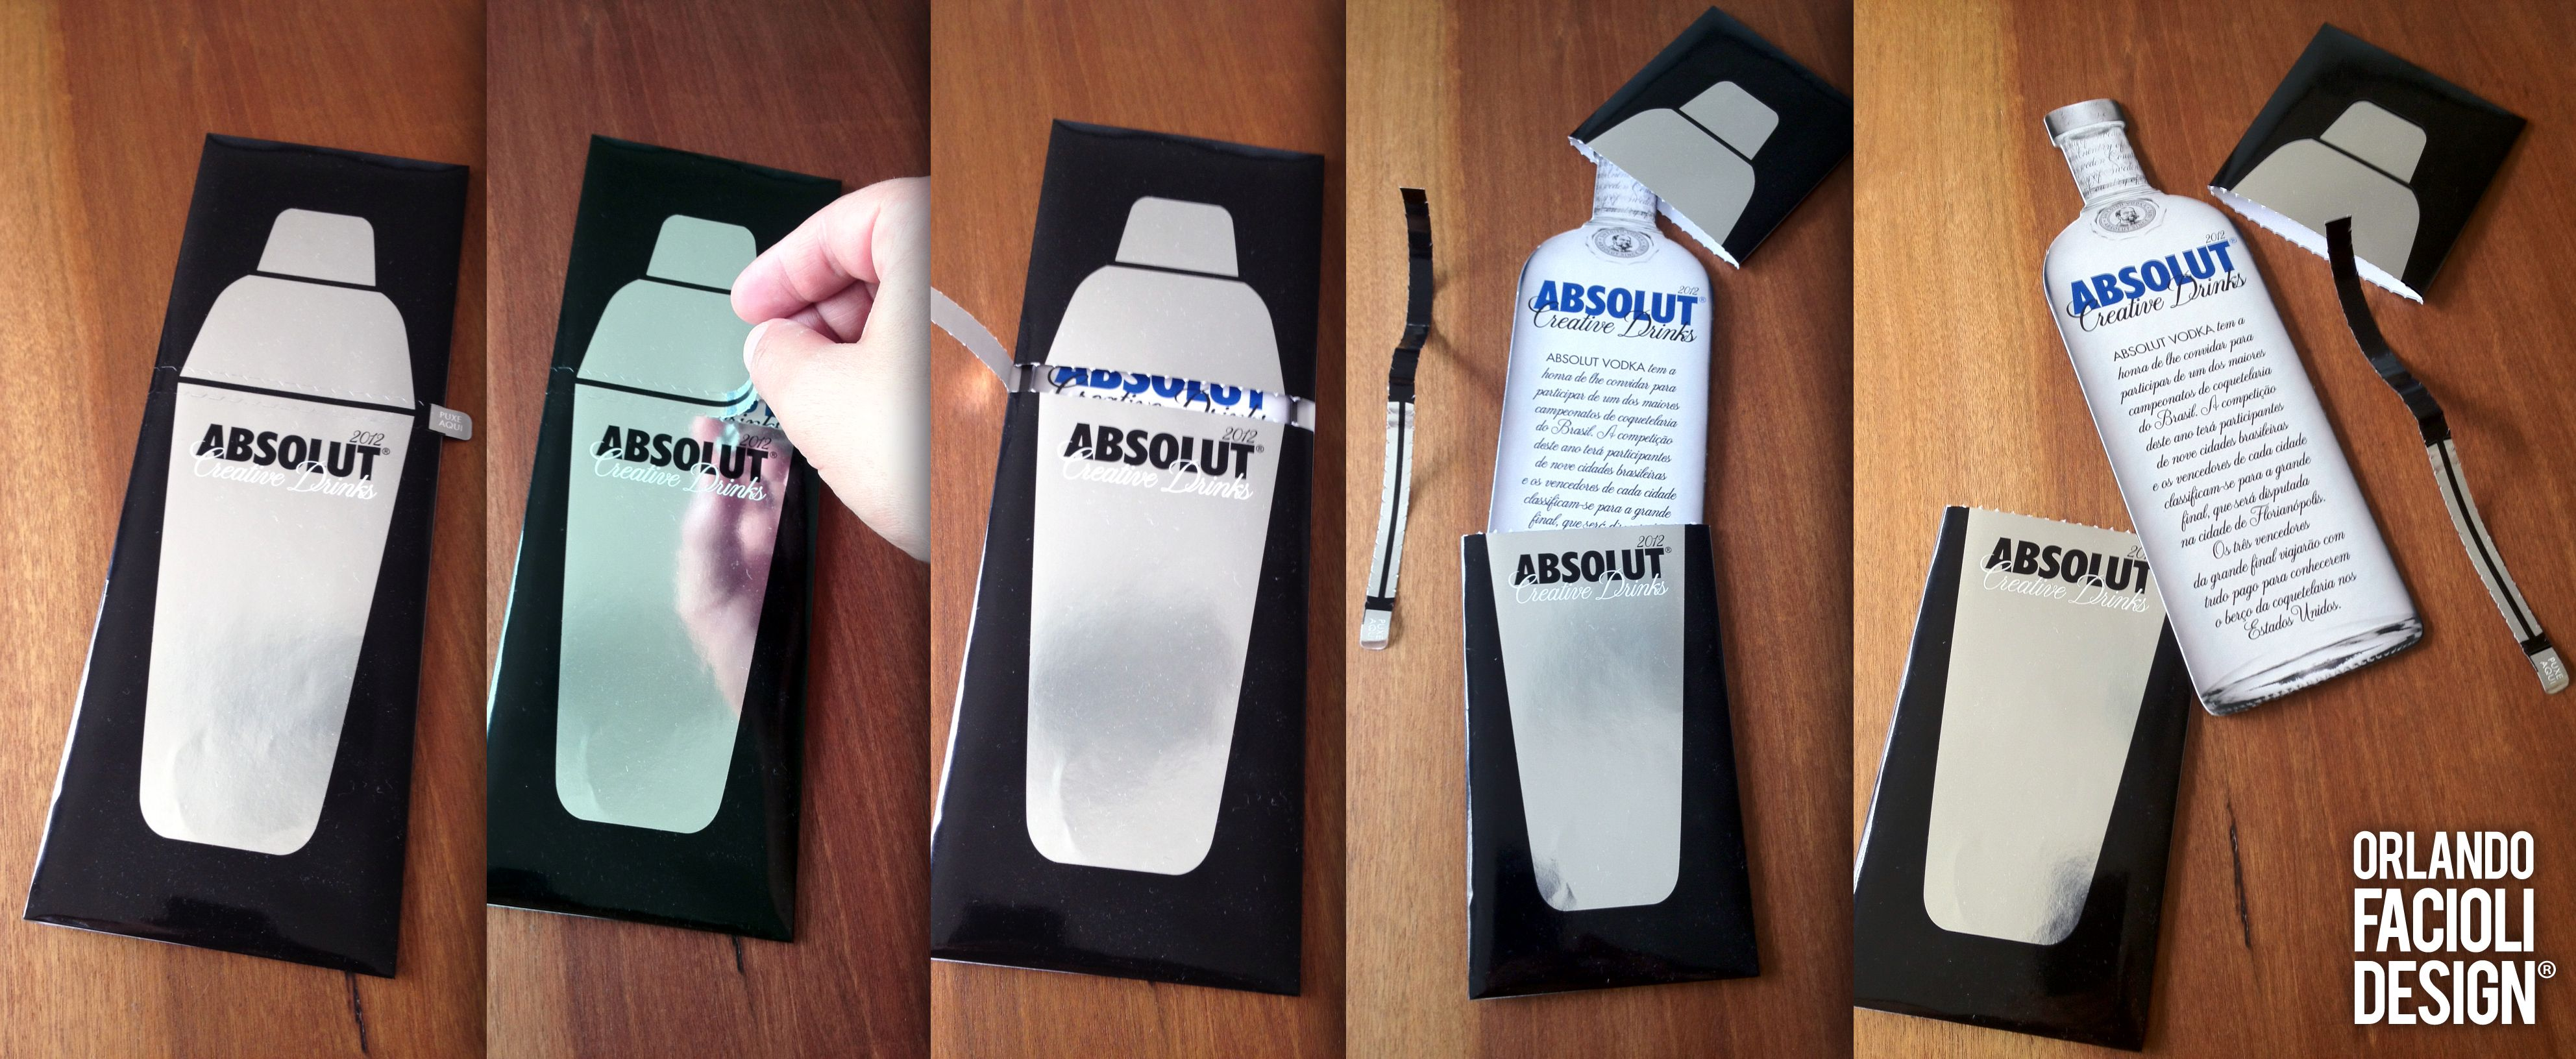 absolut vodka invitation